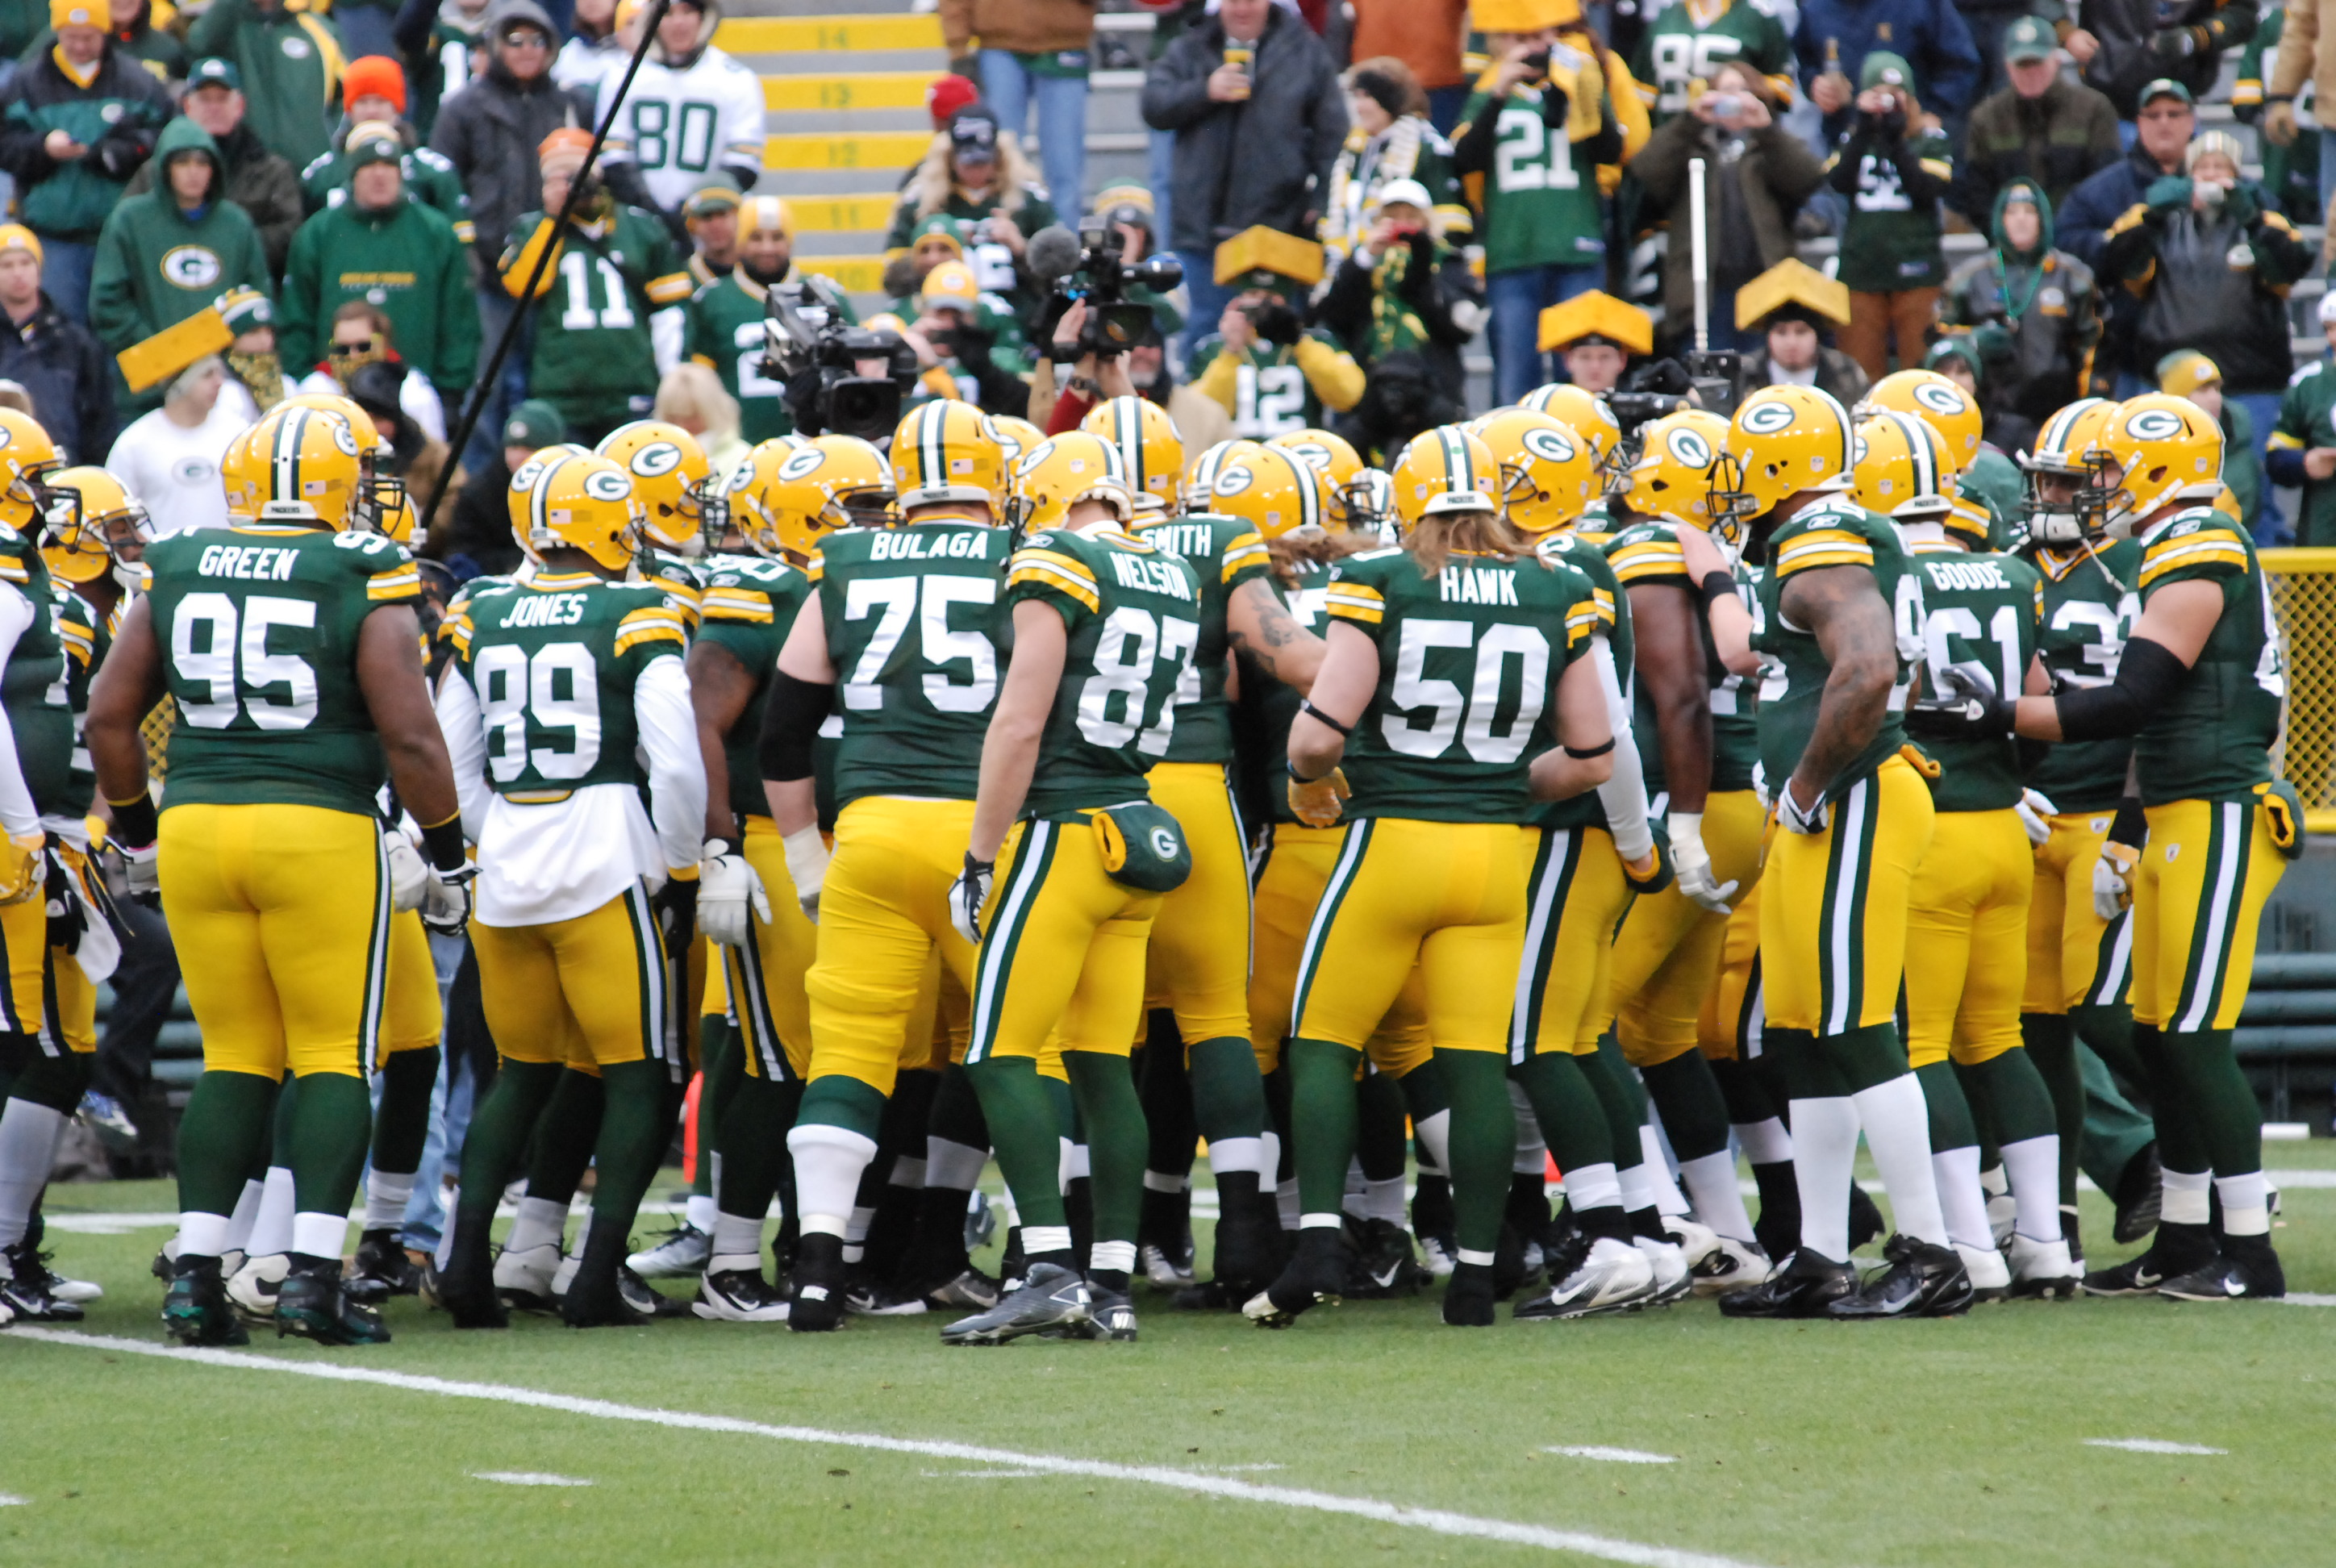 de0b8eb05 How the Packers adjust to the changes they have endured this year will make  a difference in Sunday s game.